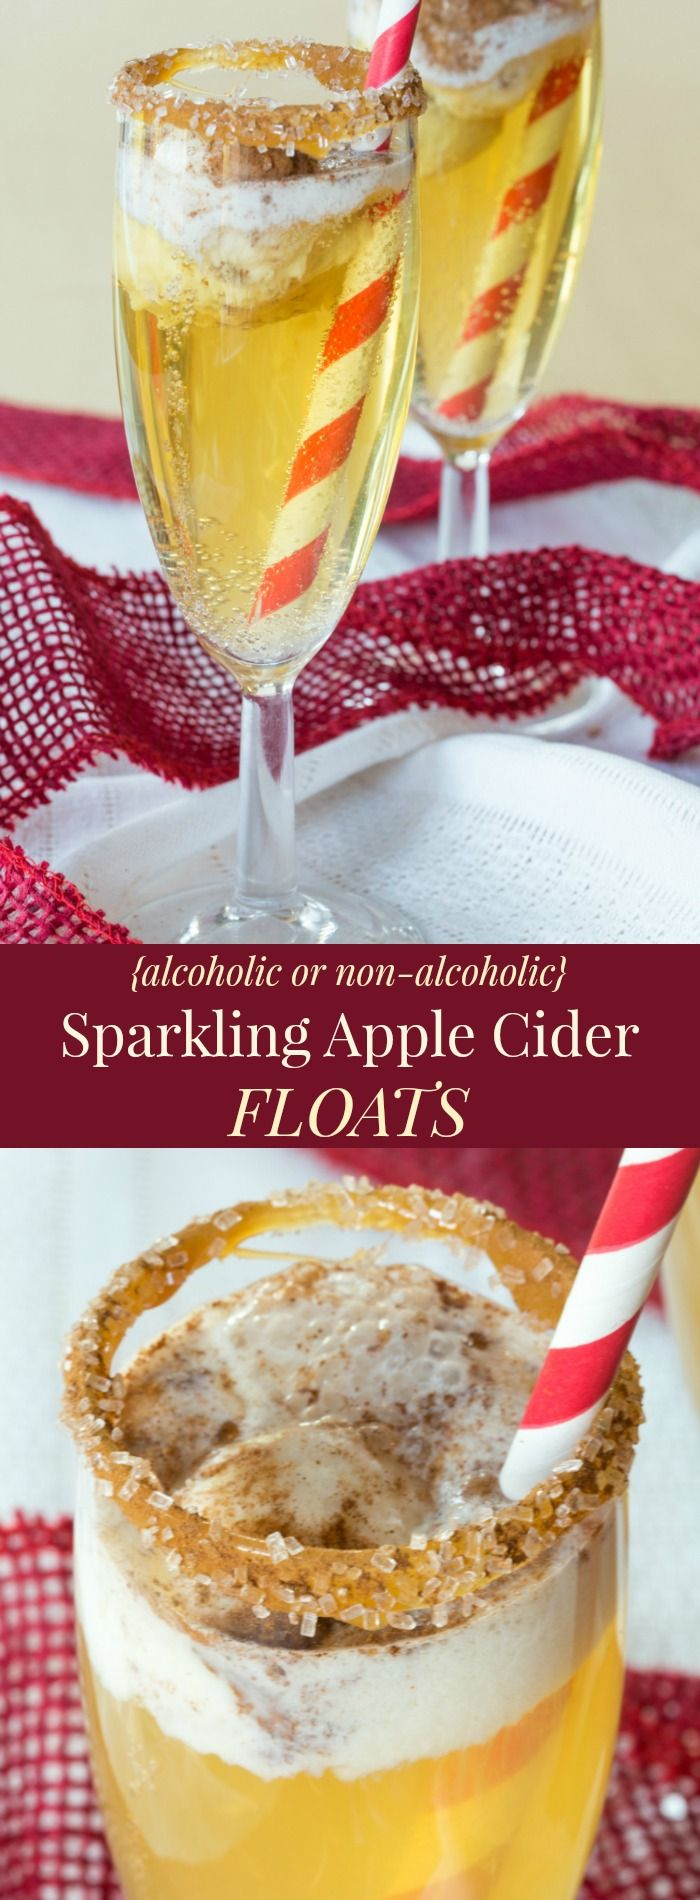 Sparkling Apple Cider Floats - alcoholic and non-alcoholic versions for a festive party drink with tricks to make them extra easy and extra special!